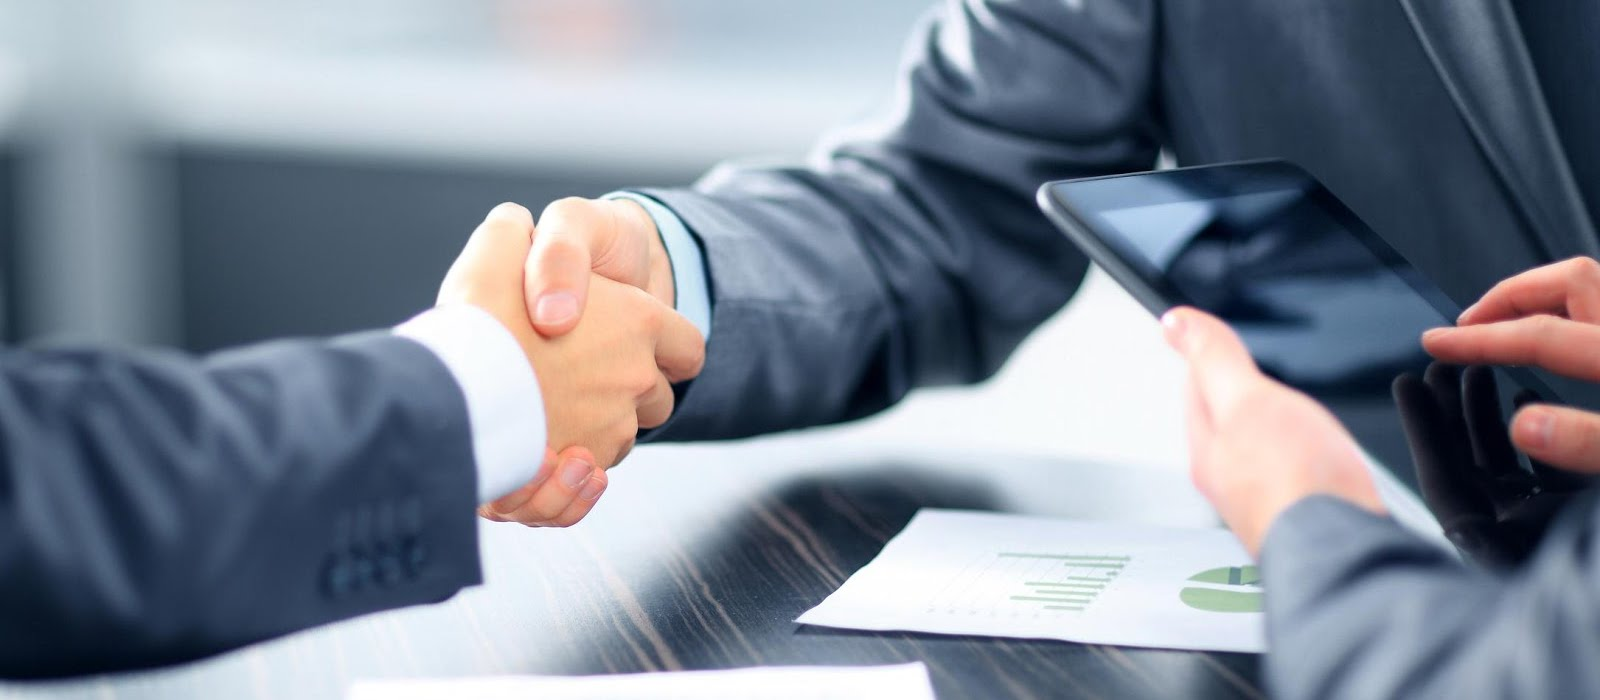 Shaking hands after agreeing business in Houghton Regis